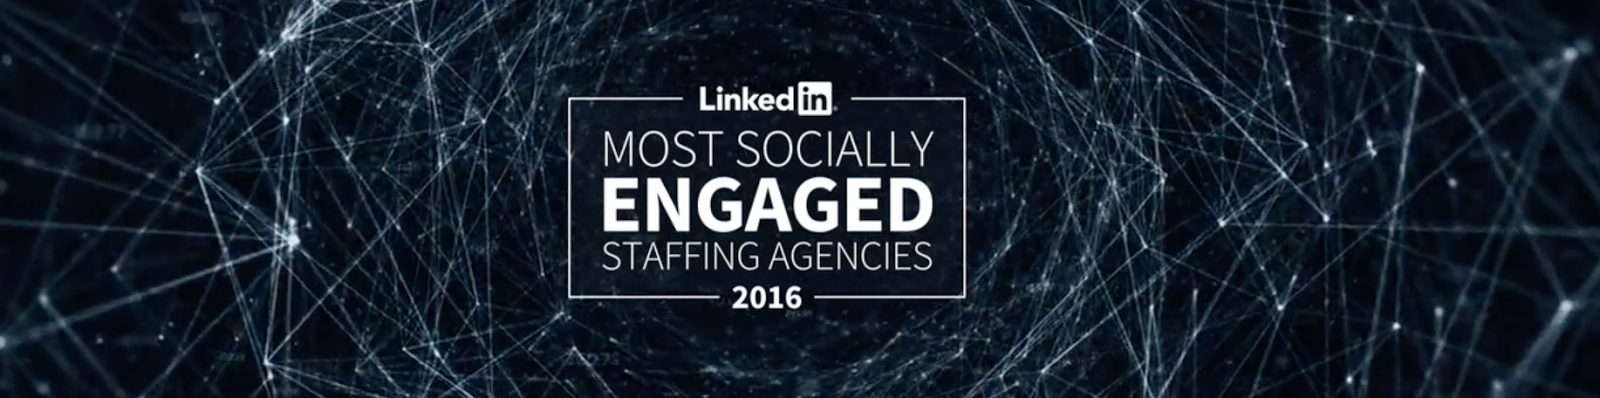 LinkedIn Most Socially Engaged Agencies - 2016